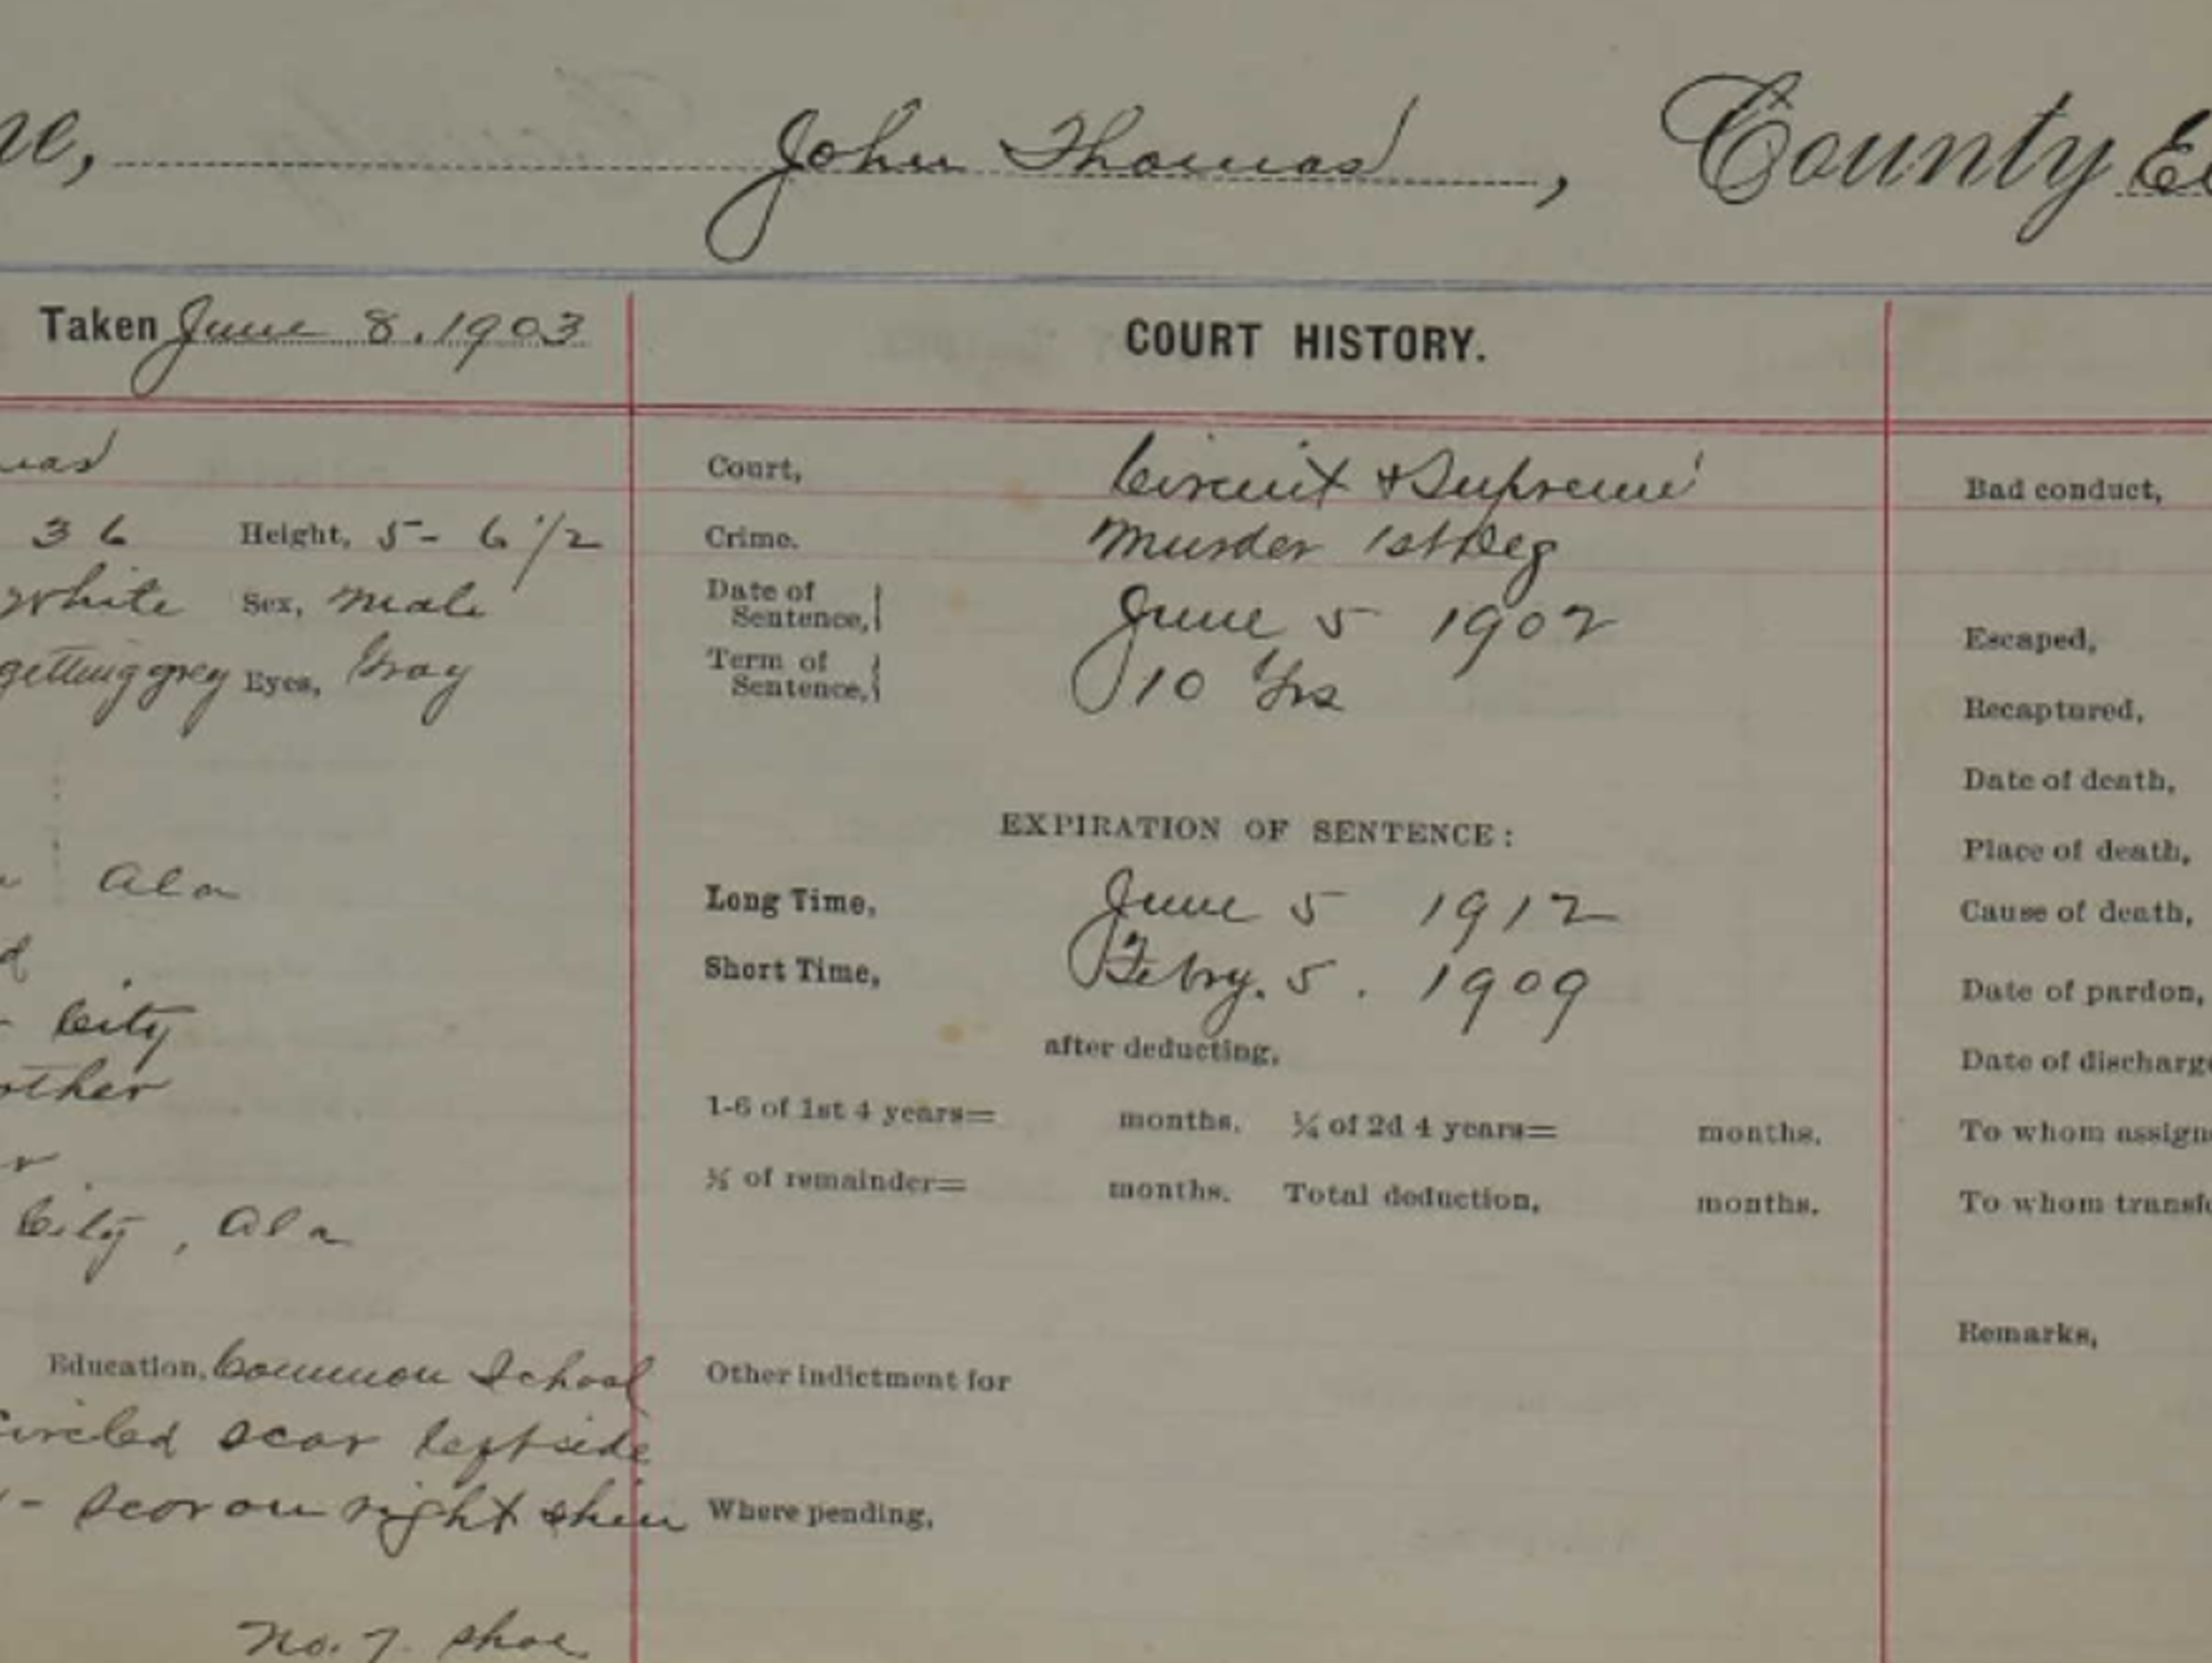 The convict file for John Thomas, recording his intake in June 1902.